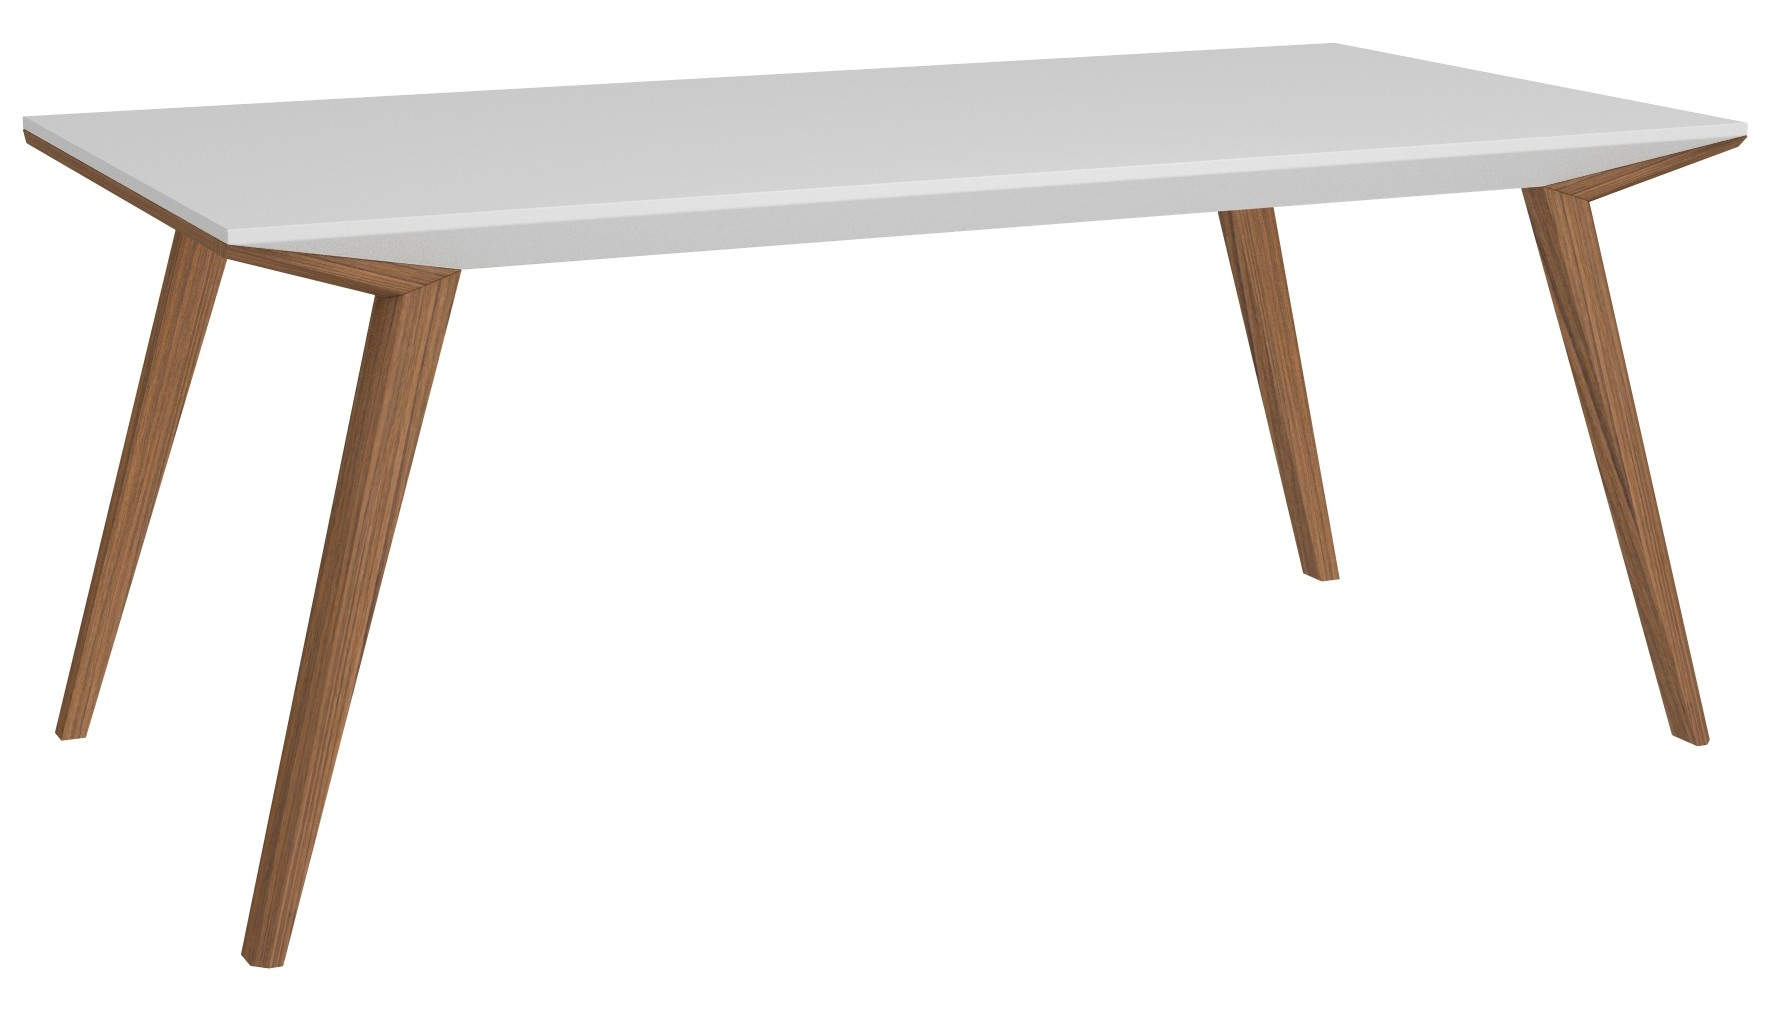 Branden 2 White Rectangular Dining Table from Bellini  : brandendtwhtd from colemanfurniture.com size 1781 x 1010 jpeg 93kB